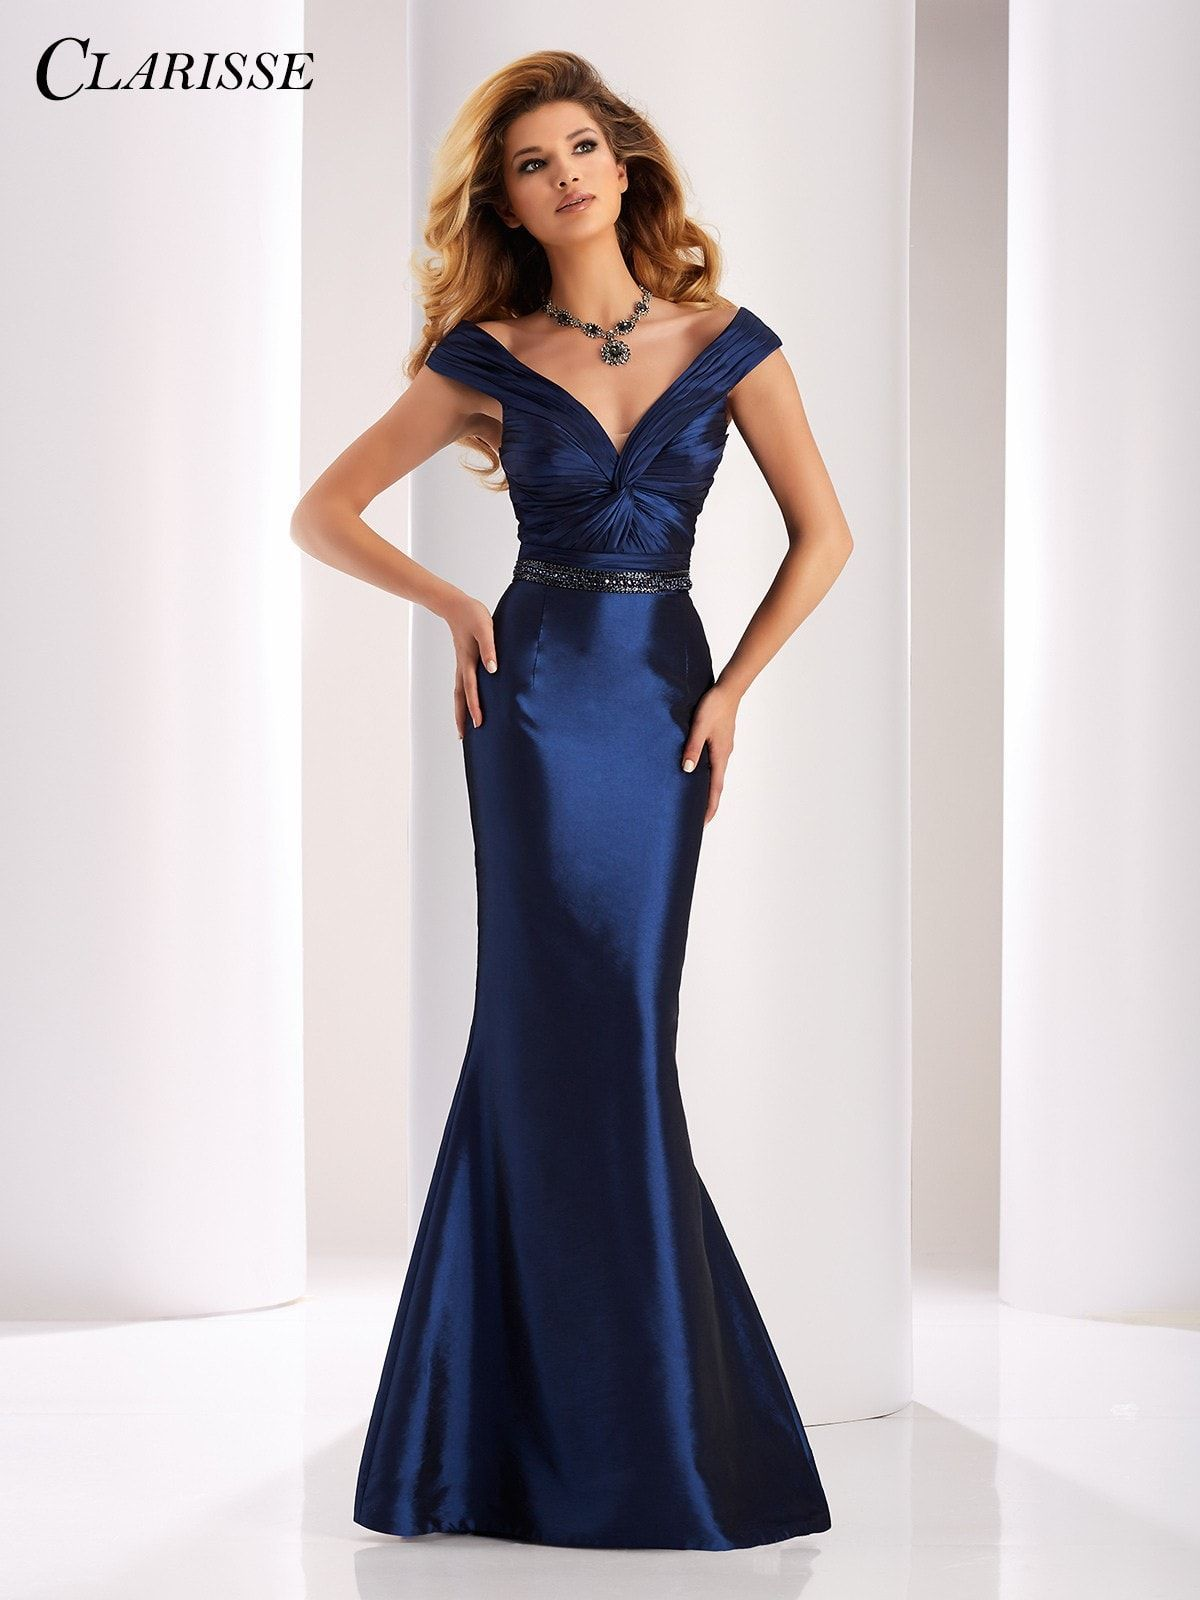 Clarisse couture navy vneck prom dress mother of the bride